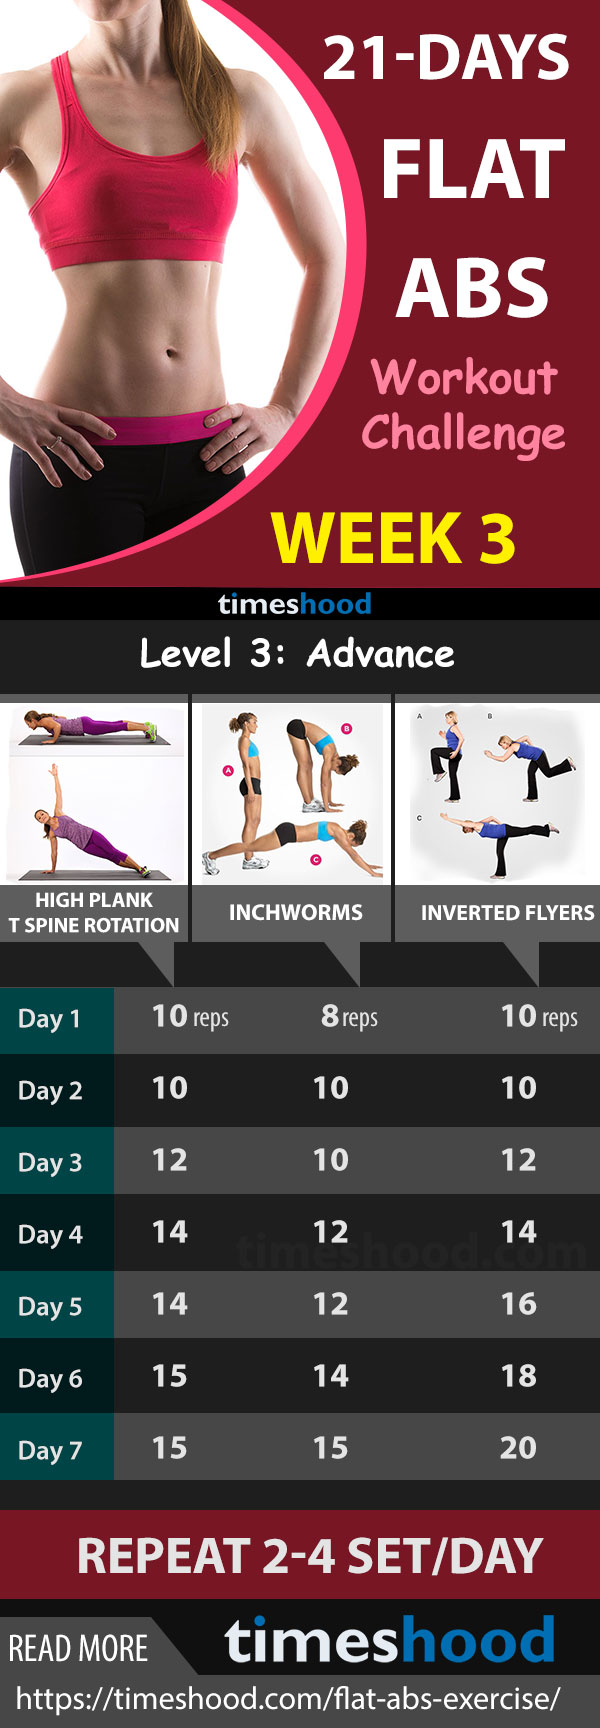 21 Days Flat Abs Workouts Challenge Beginners To Advanced Abs Exercise Timeshood